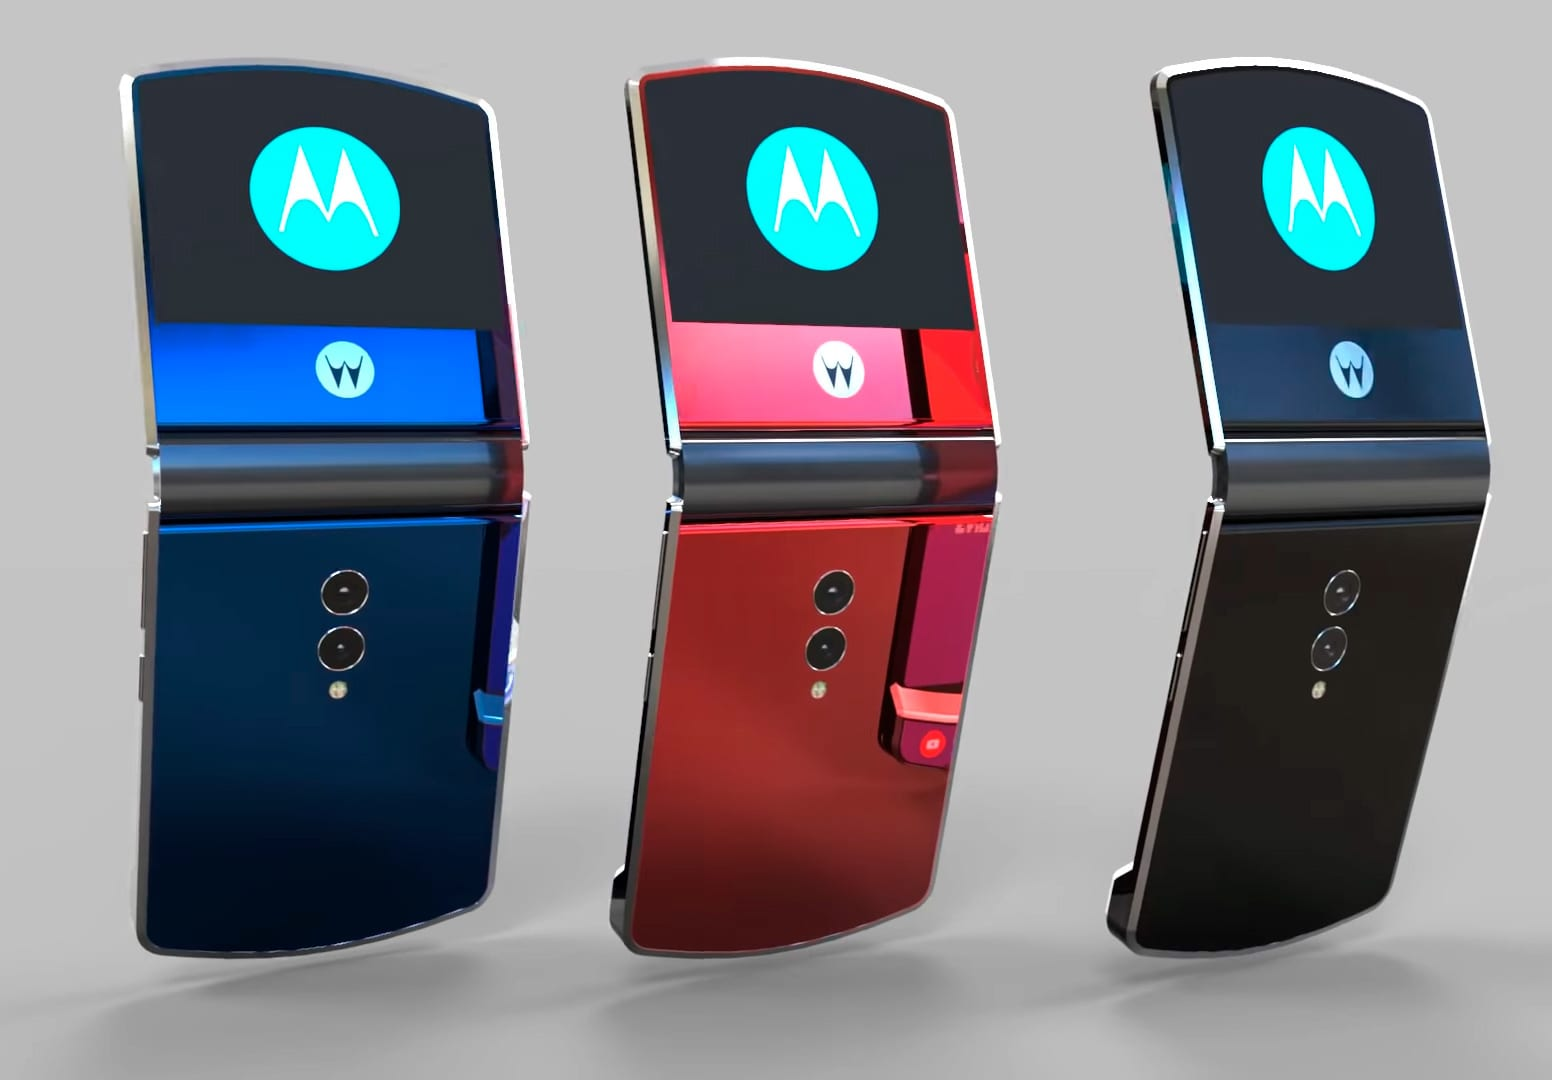 The Motorola Razr Mtico Returns With Flexible Display And A High Price